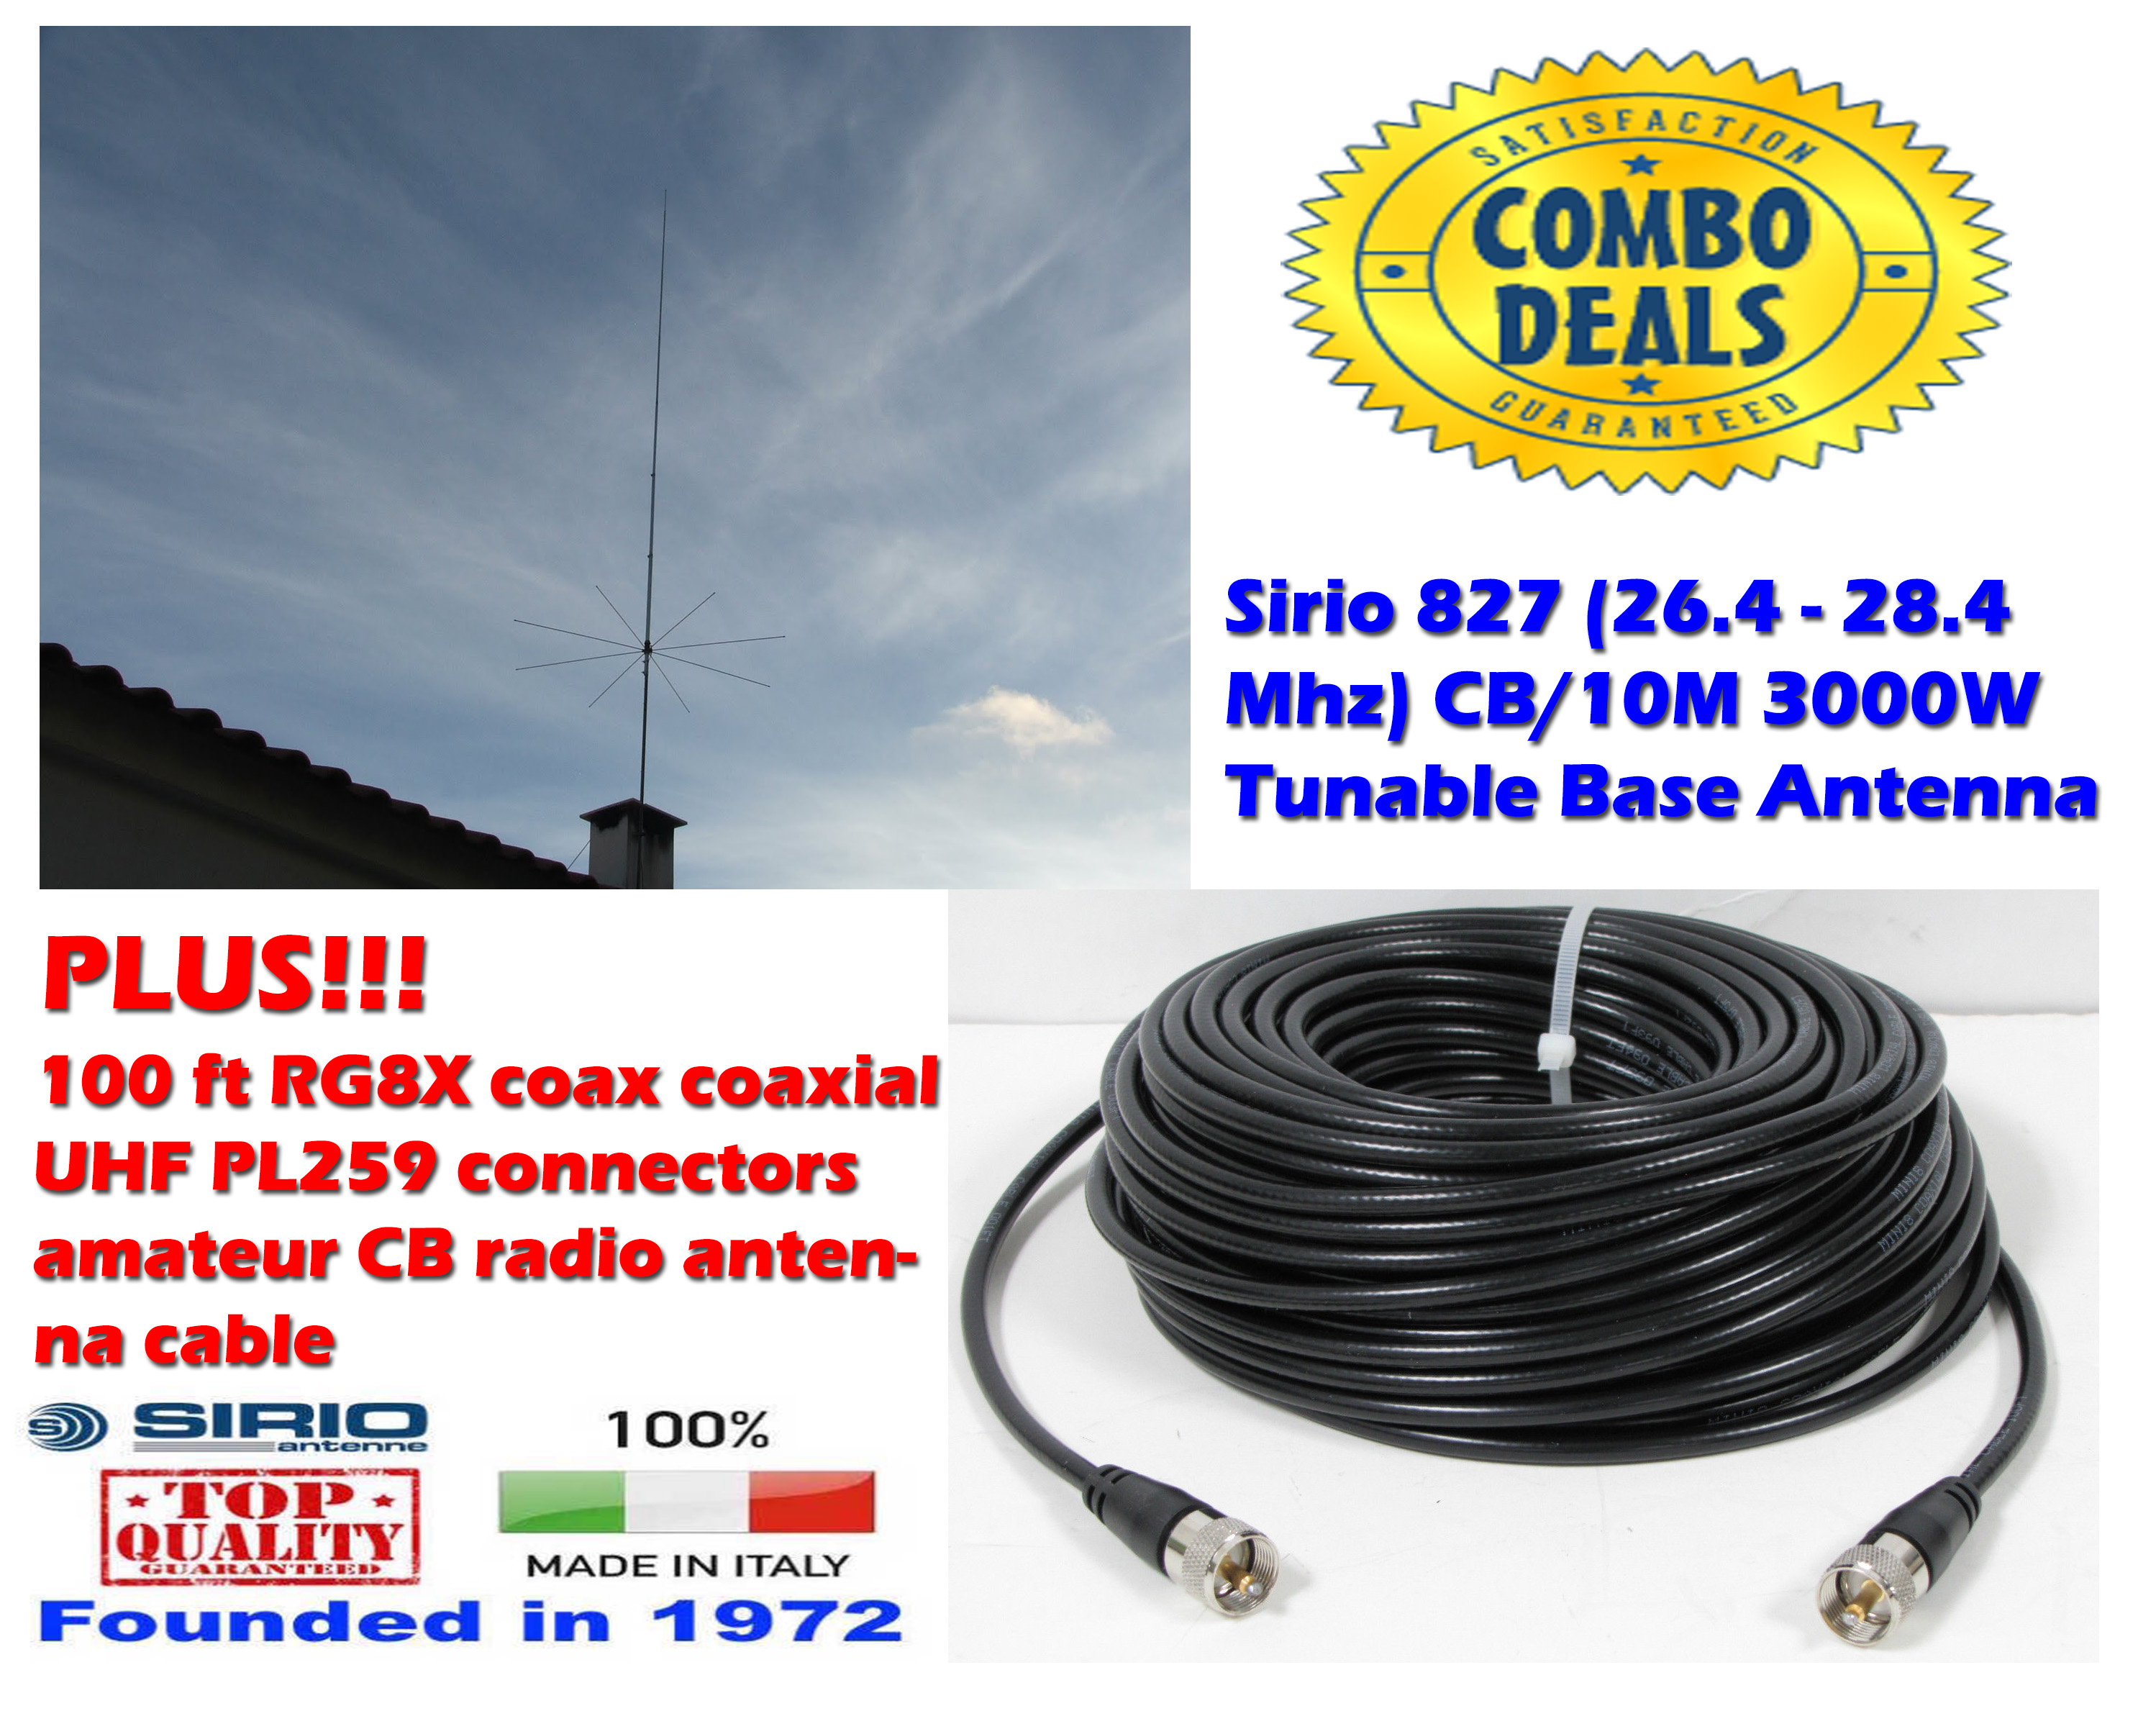 Sirio 827 CB/10M 3000W Tunable Base Antenna with 100Ft Coax